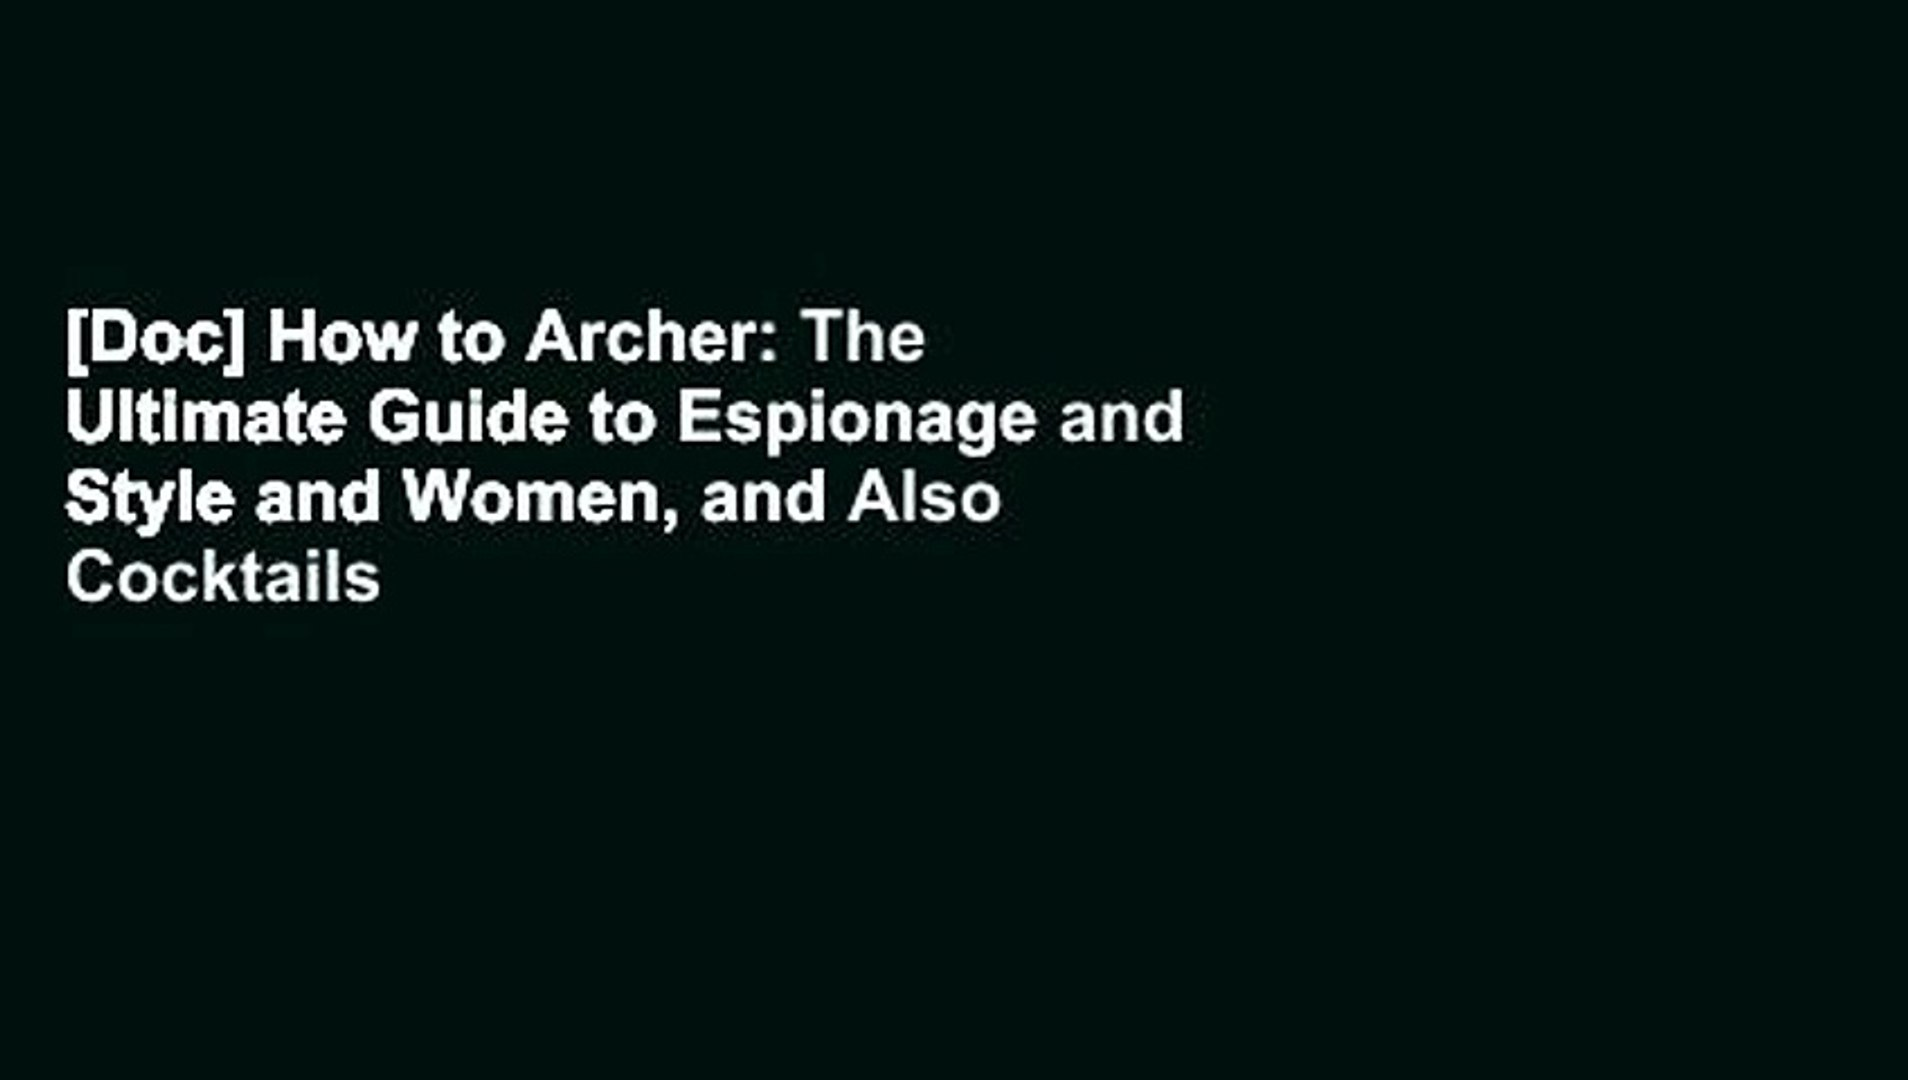 [Doc] How to Archer: The Ultimate Guide to Espionage and Style and Women, and Also Cocktails Ever